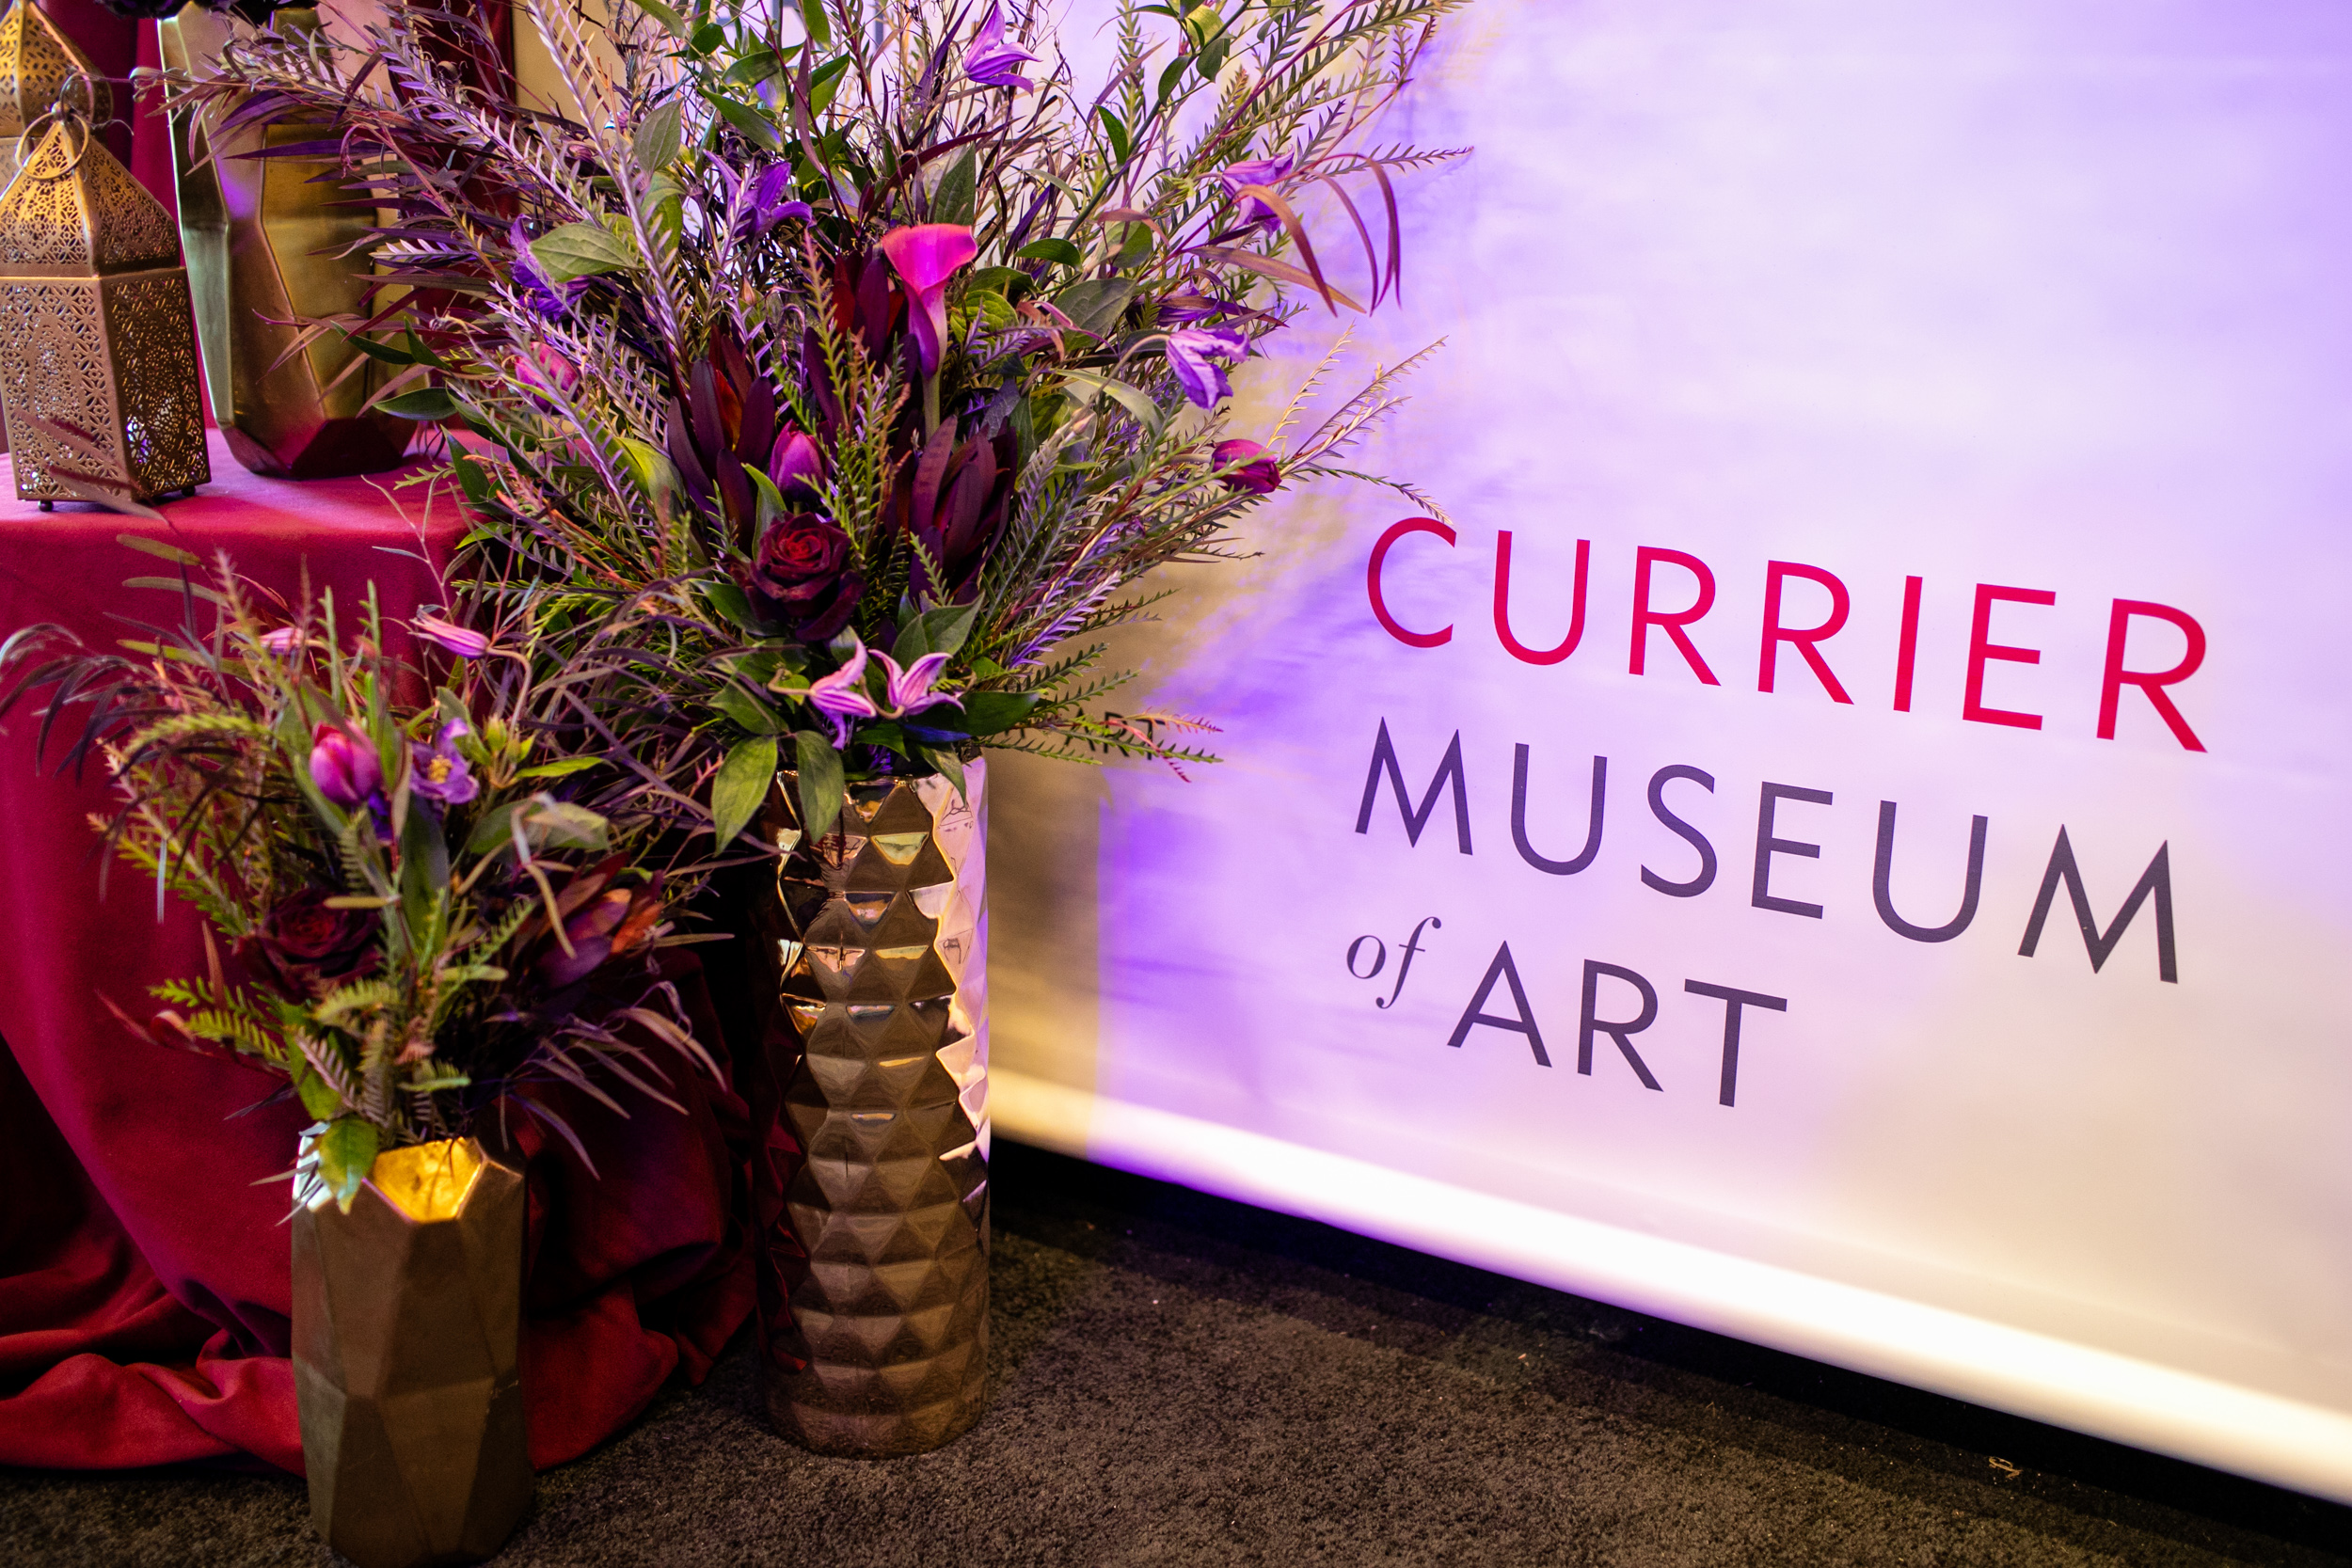 Masquerade_Ball_Currier_Museum_Manchester_Malloy_Events_floral_branding